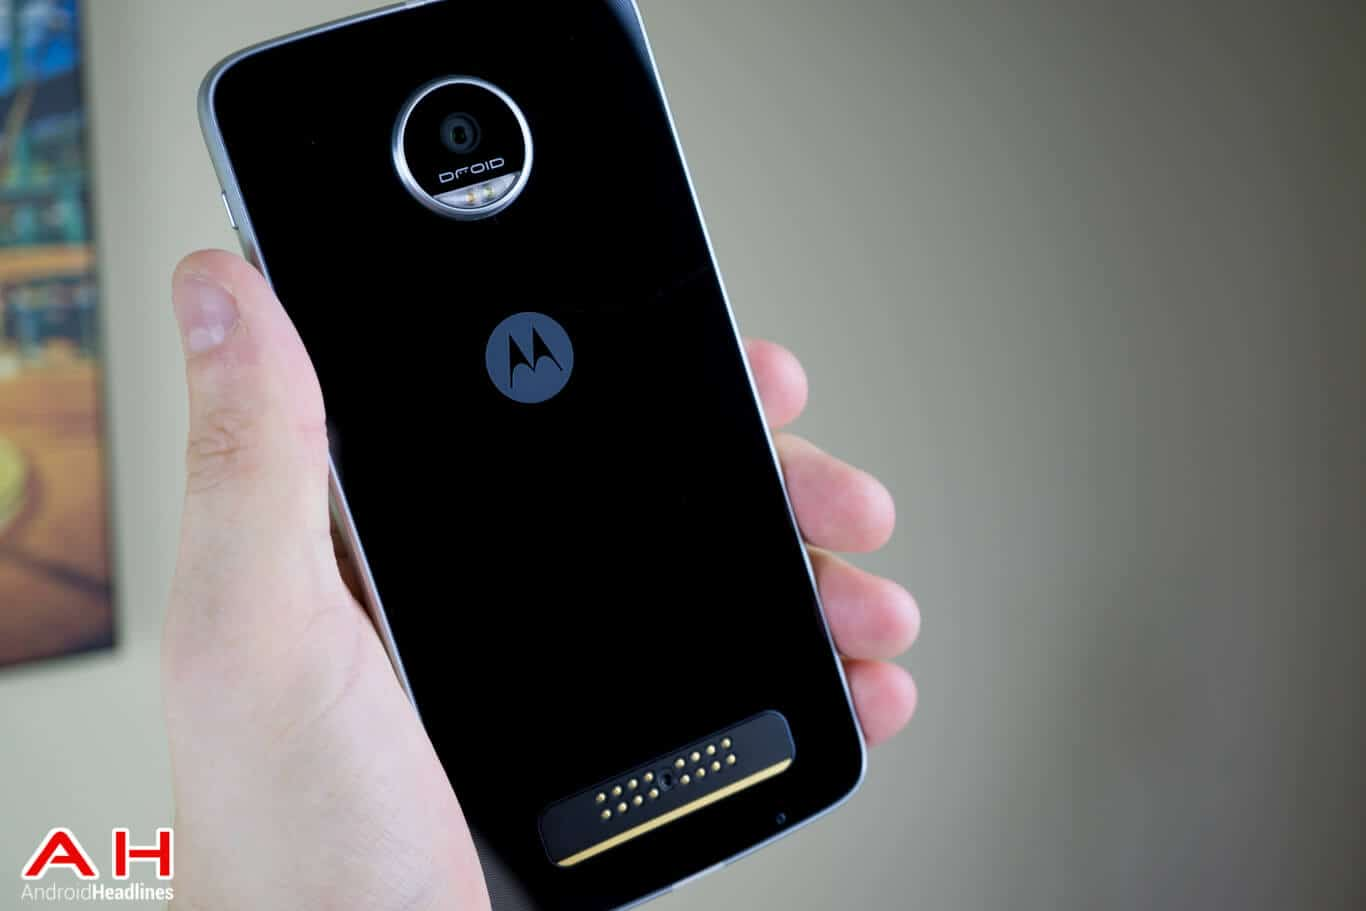 Moto z moto z play now available in india price specifications and - Moto Z Play Review Am Ah 18